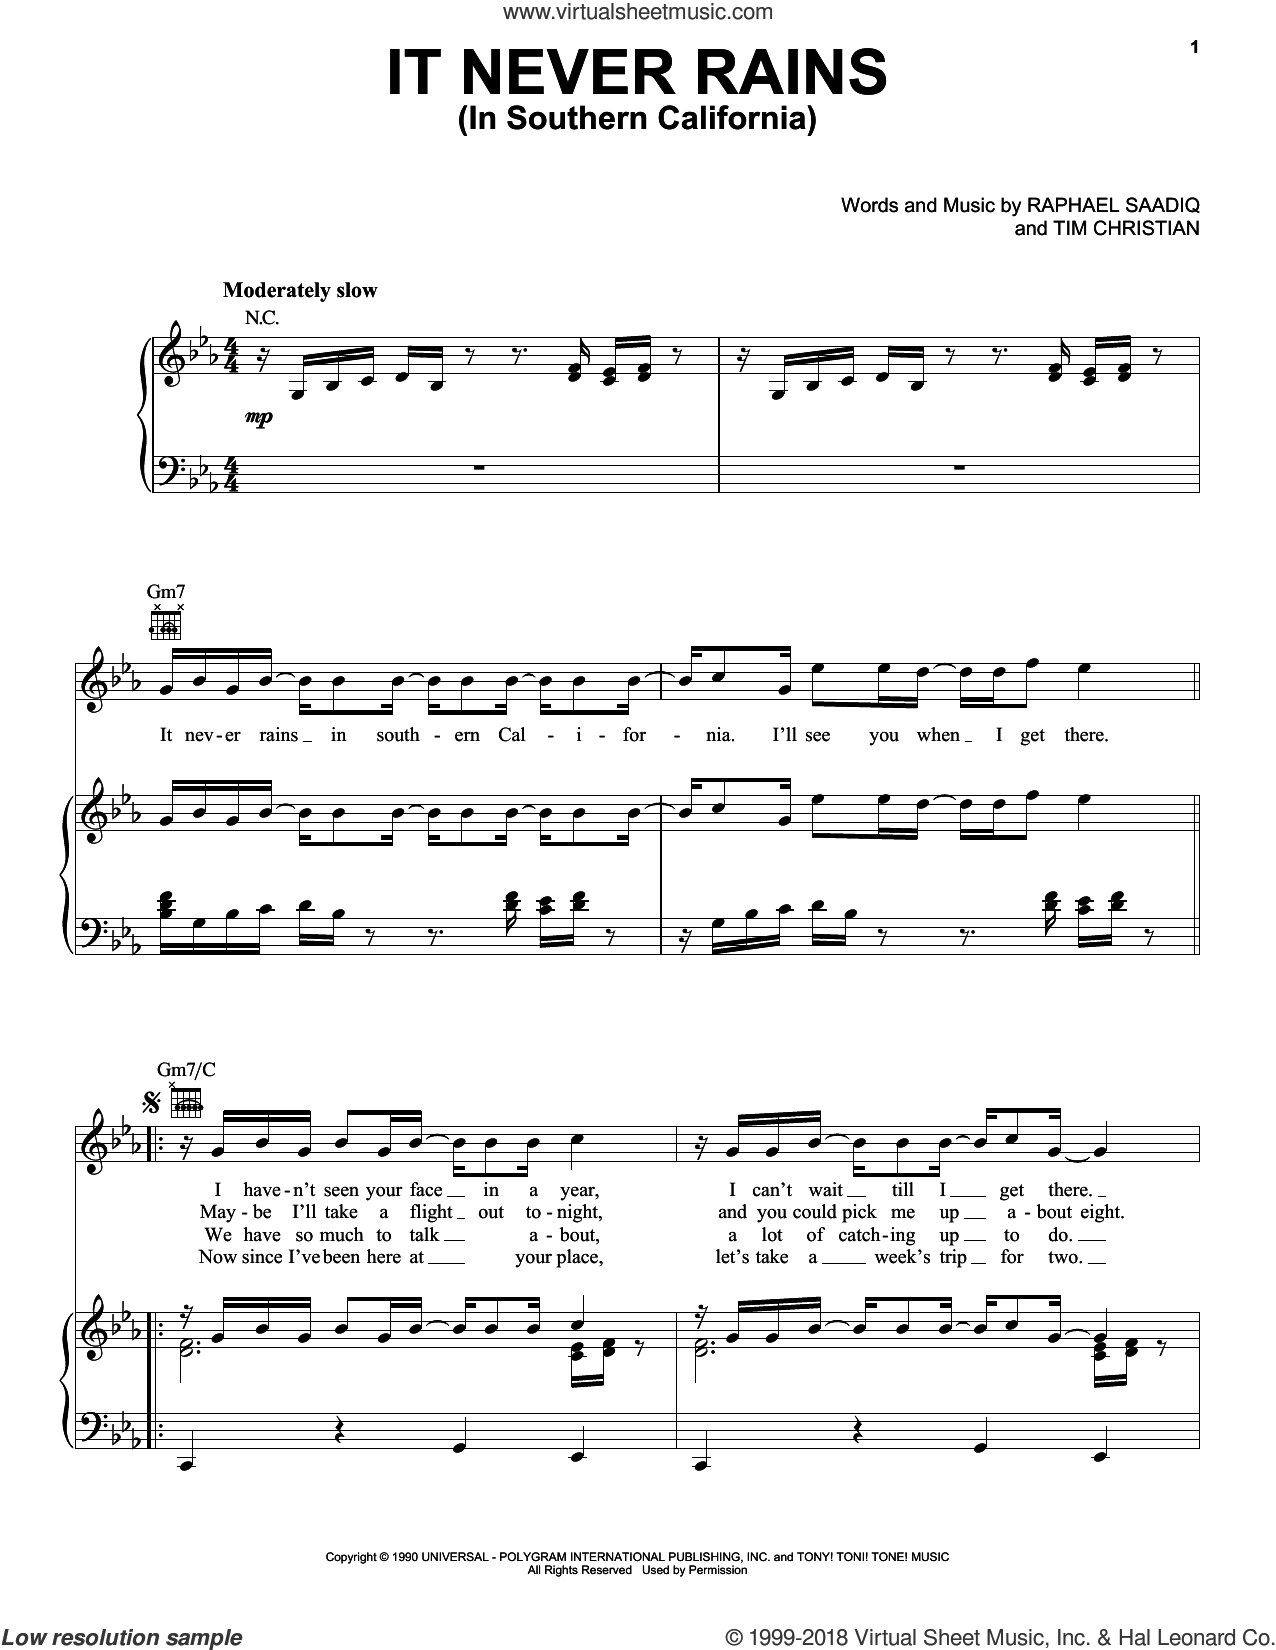 It Never Rains (In Southern California) sheet music for voice, piano or guitar by Albert Hammond, Raphael Saadiq, Tim Christian and Tony! Toni! Tone!, intermediate skill level